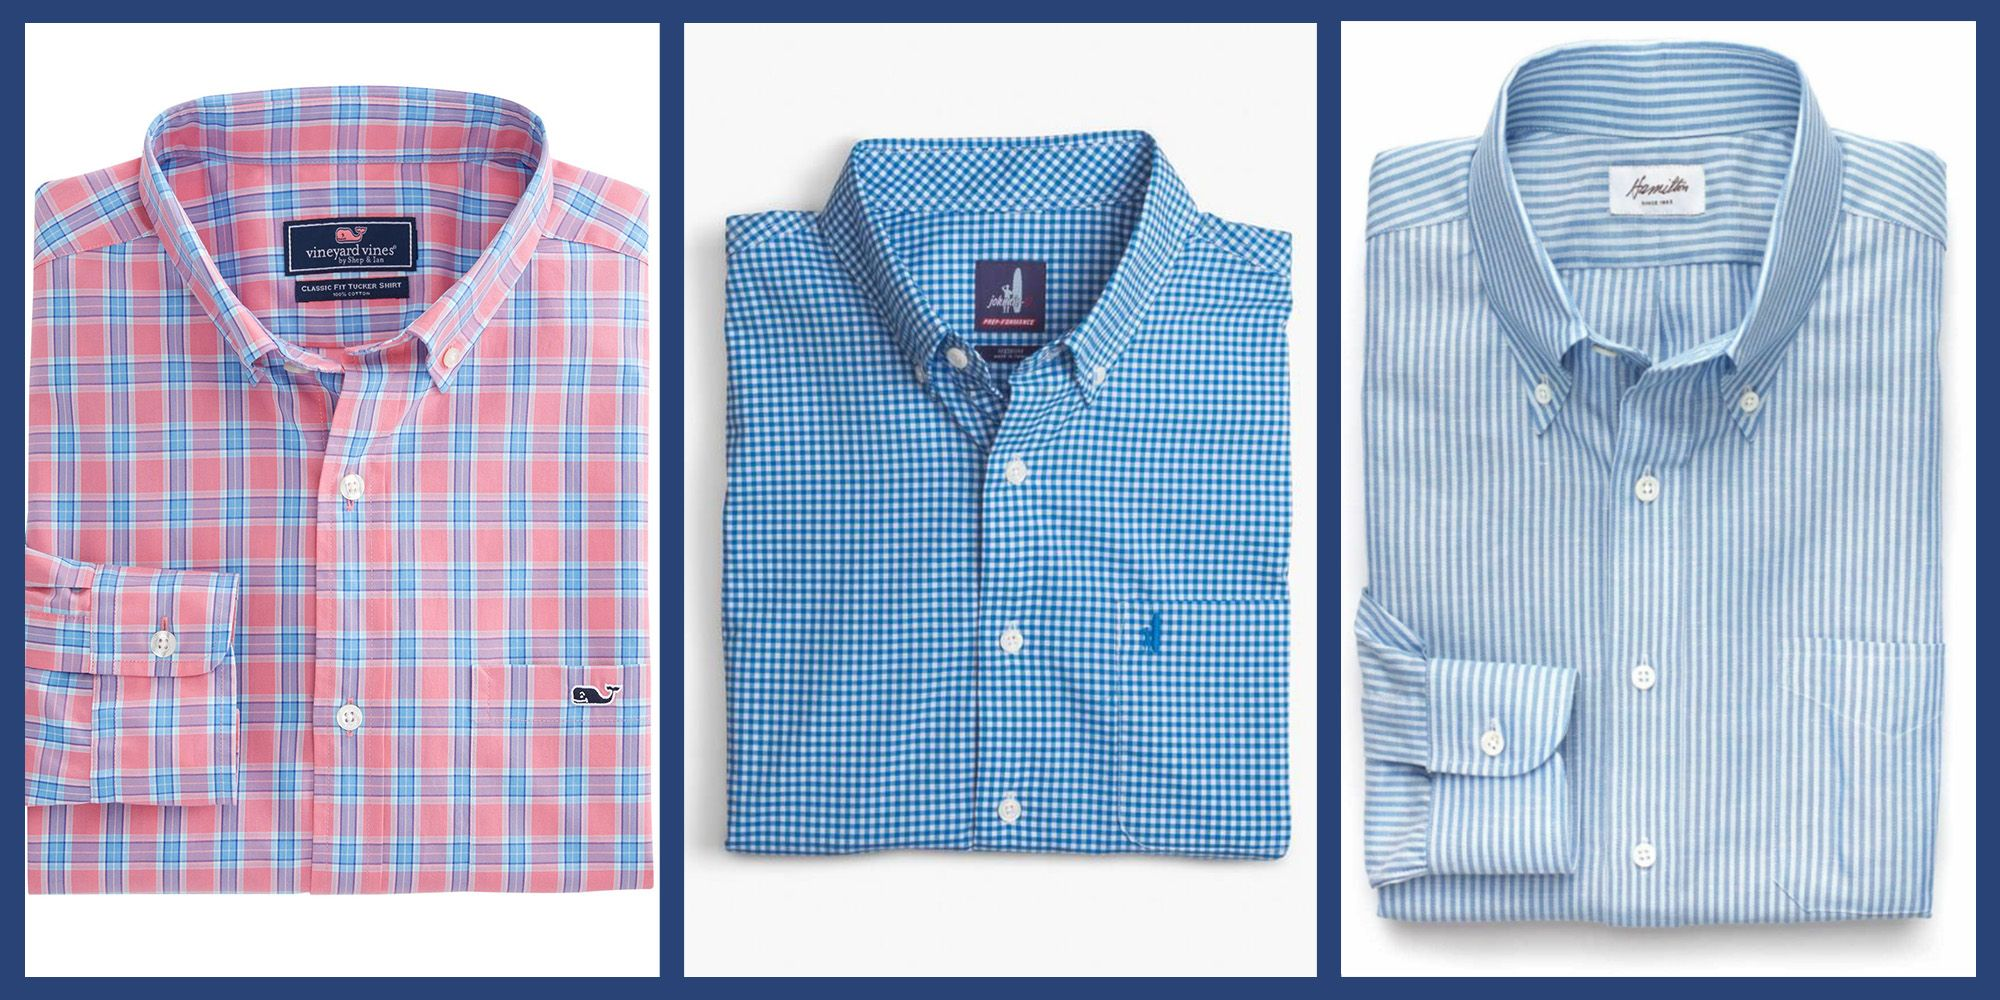 ad1f4d0d4a 14 Best Men's Summer Shirts 2019 - Casual Preppy Summer Shirts for Men